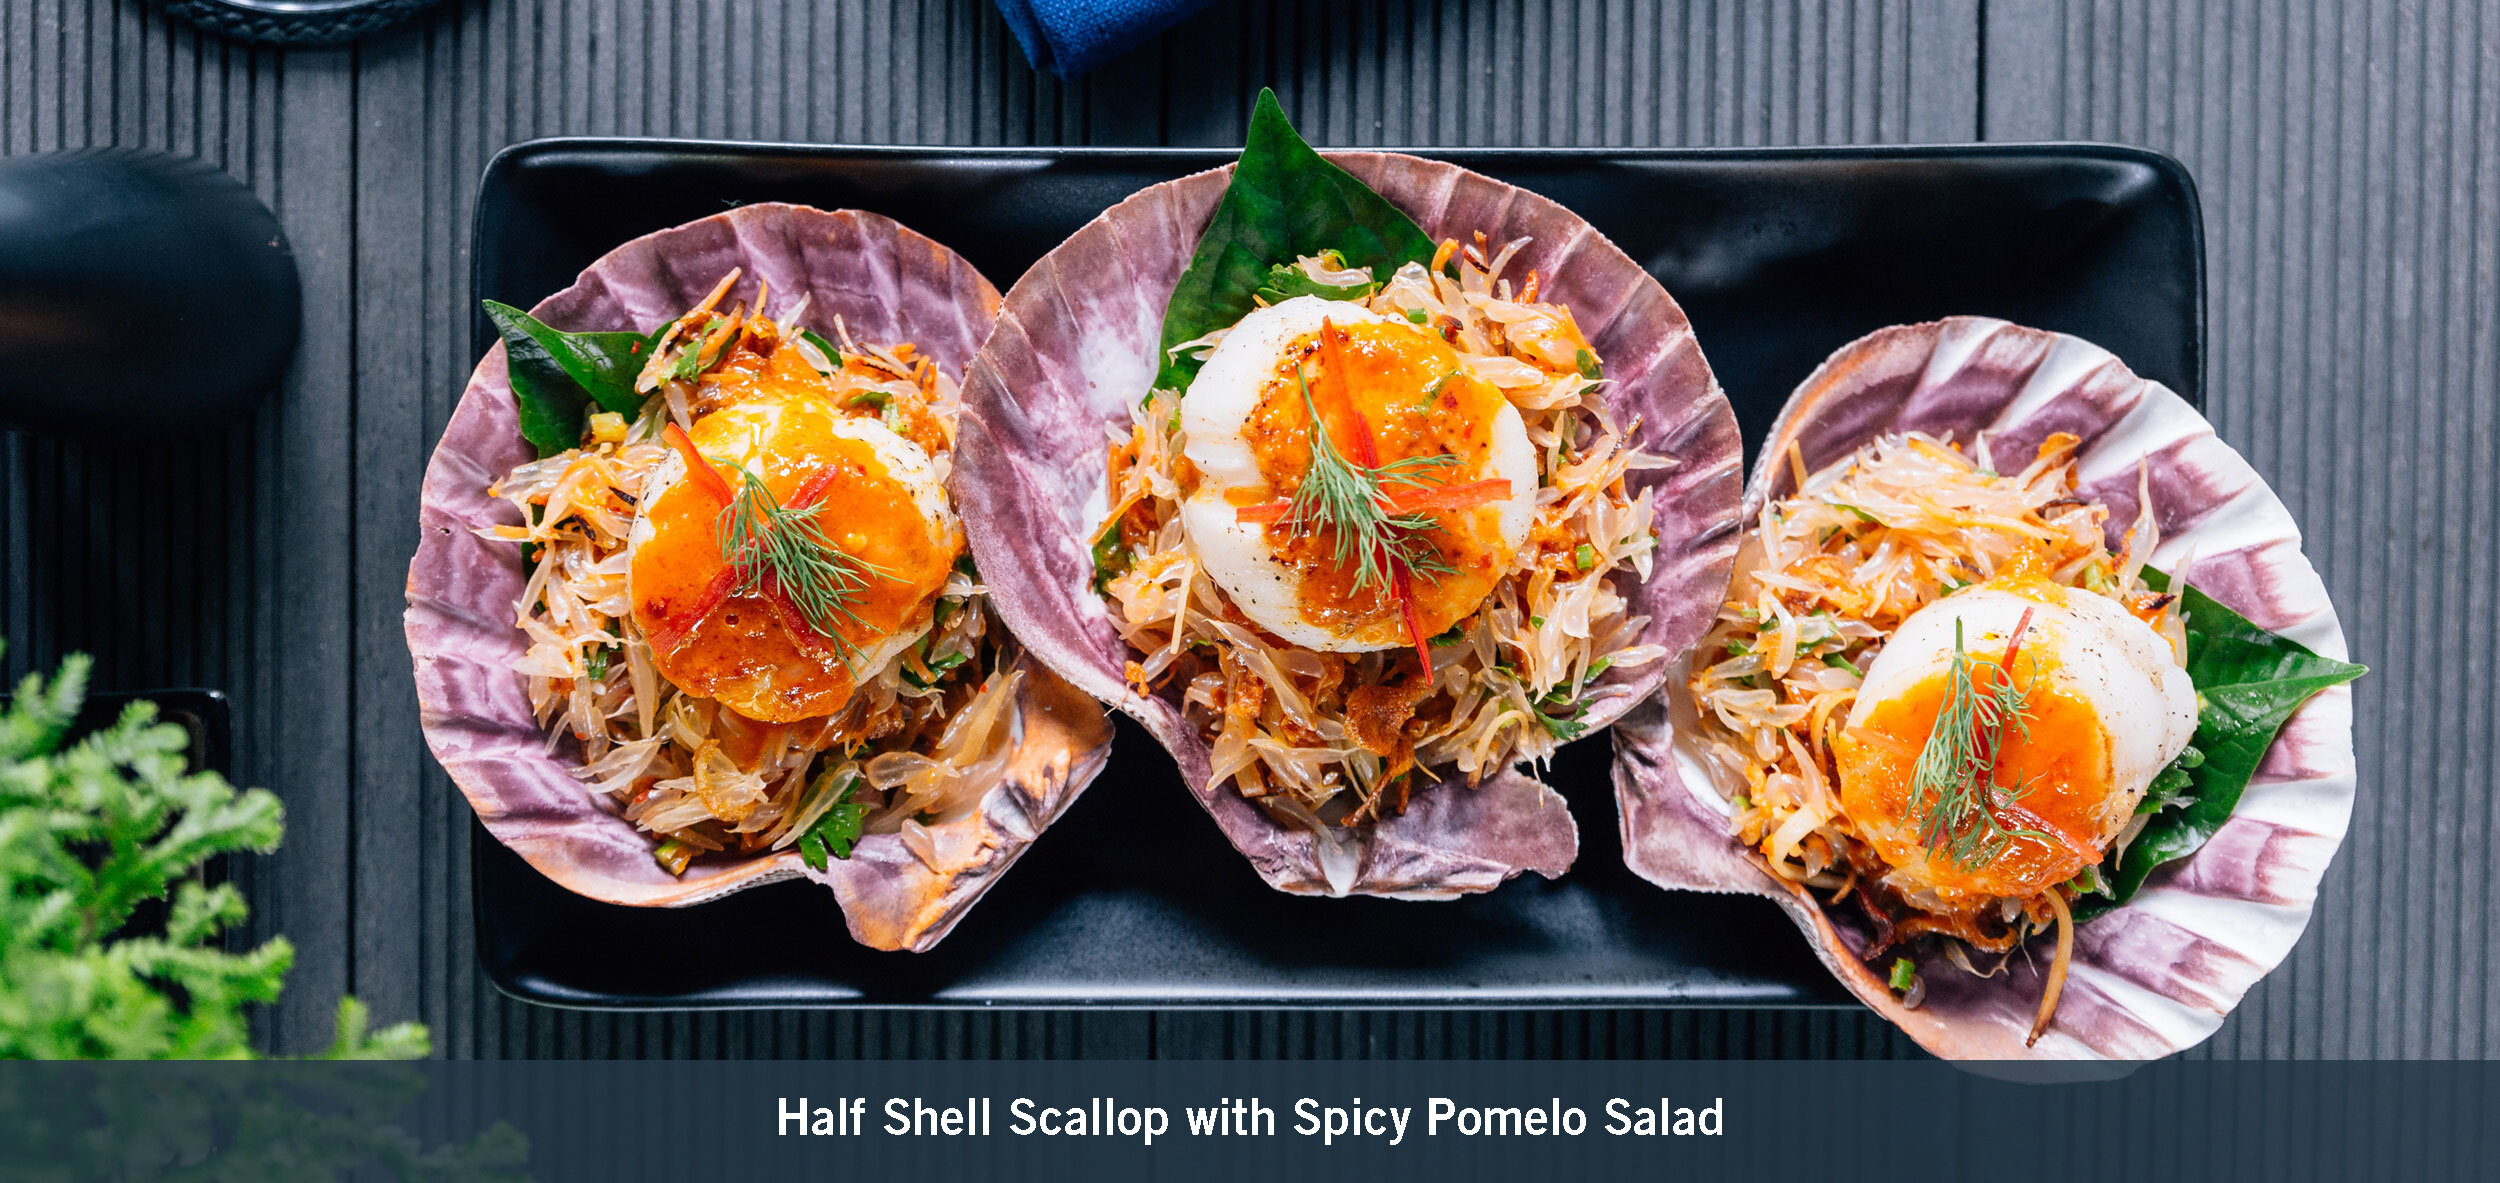 Half Shell Scallop with Spicy Pomelo Salad